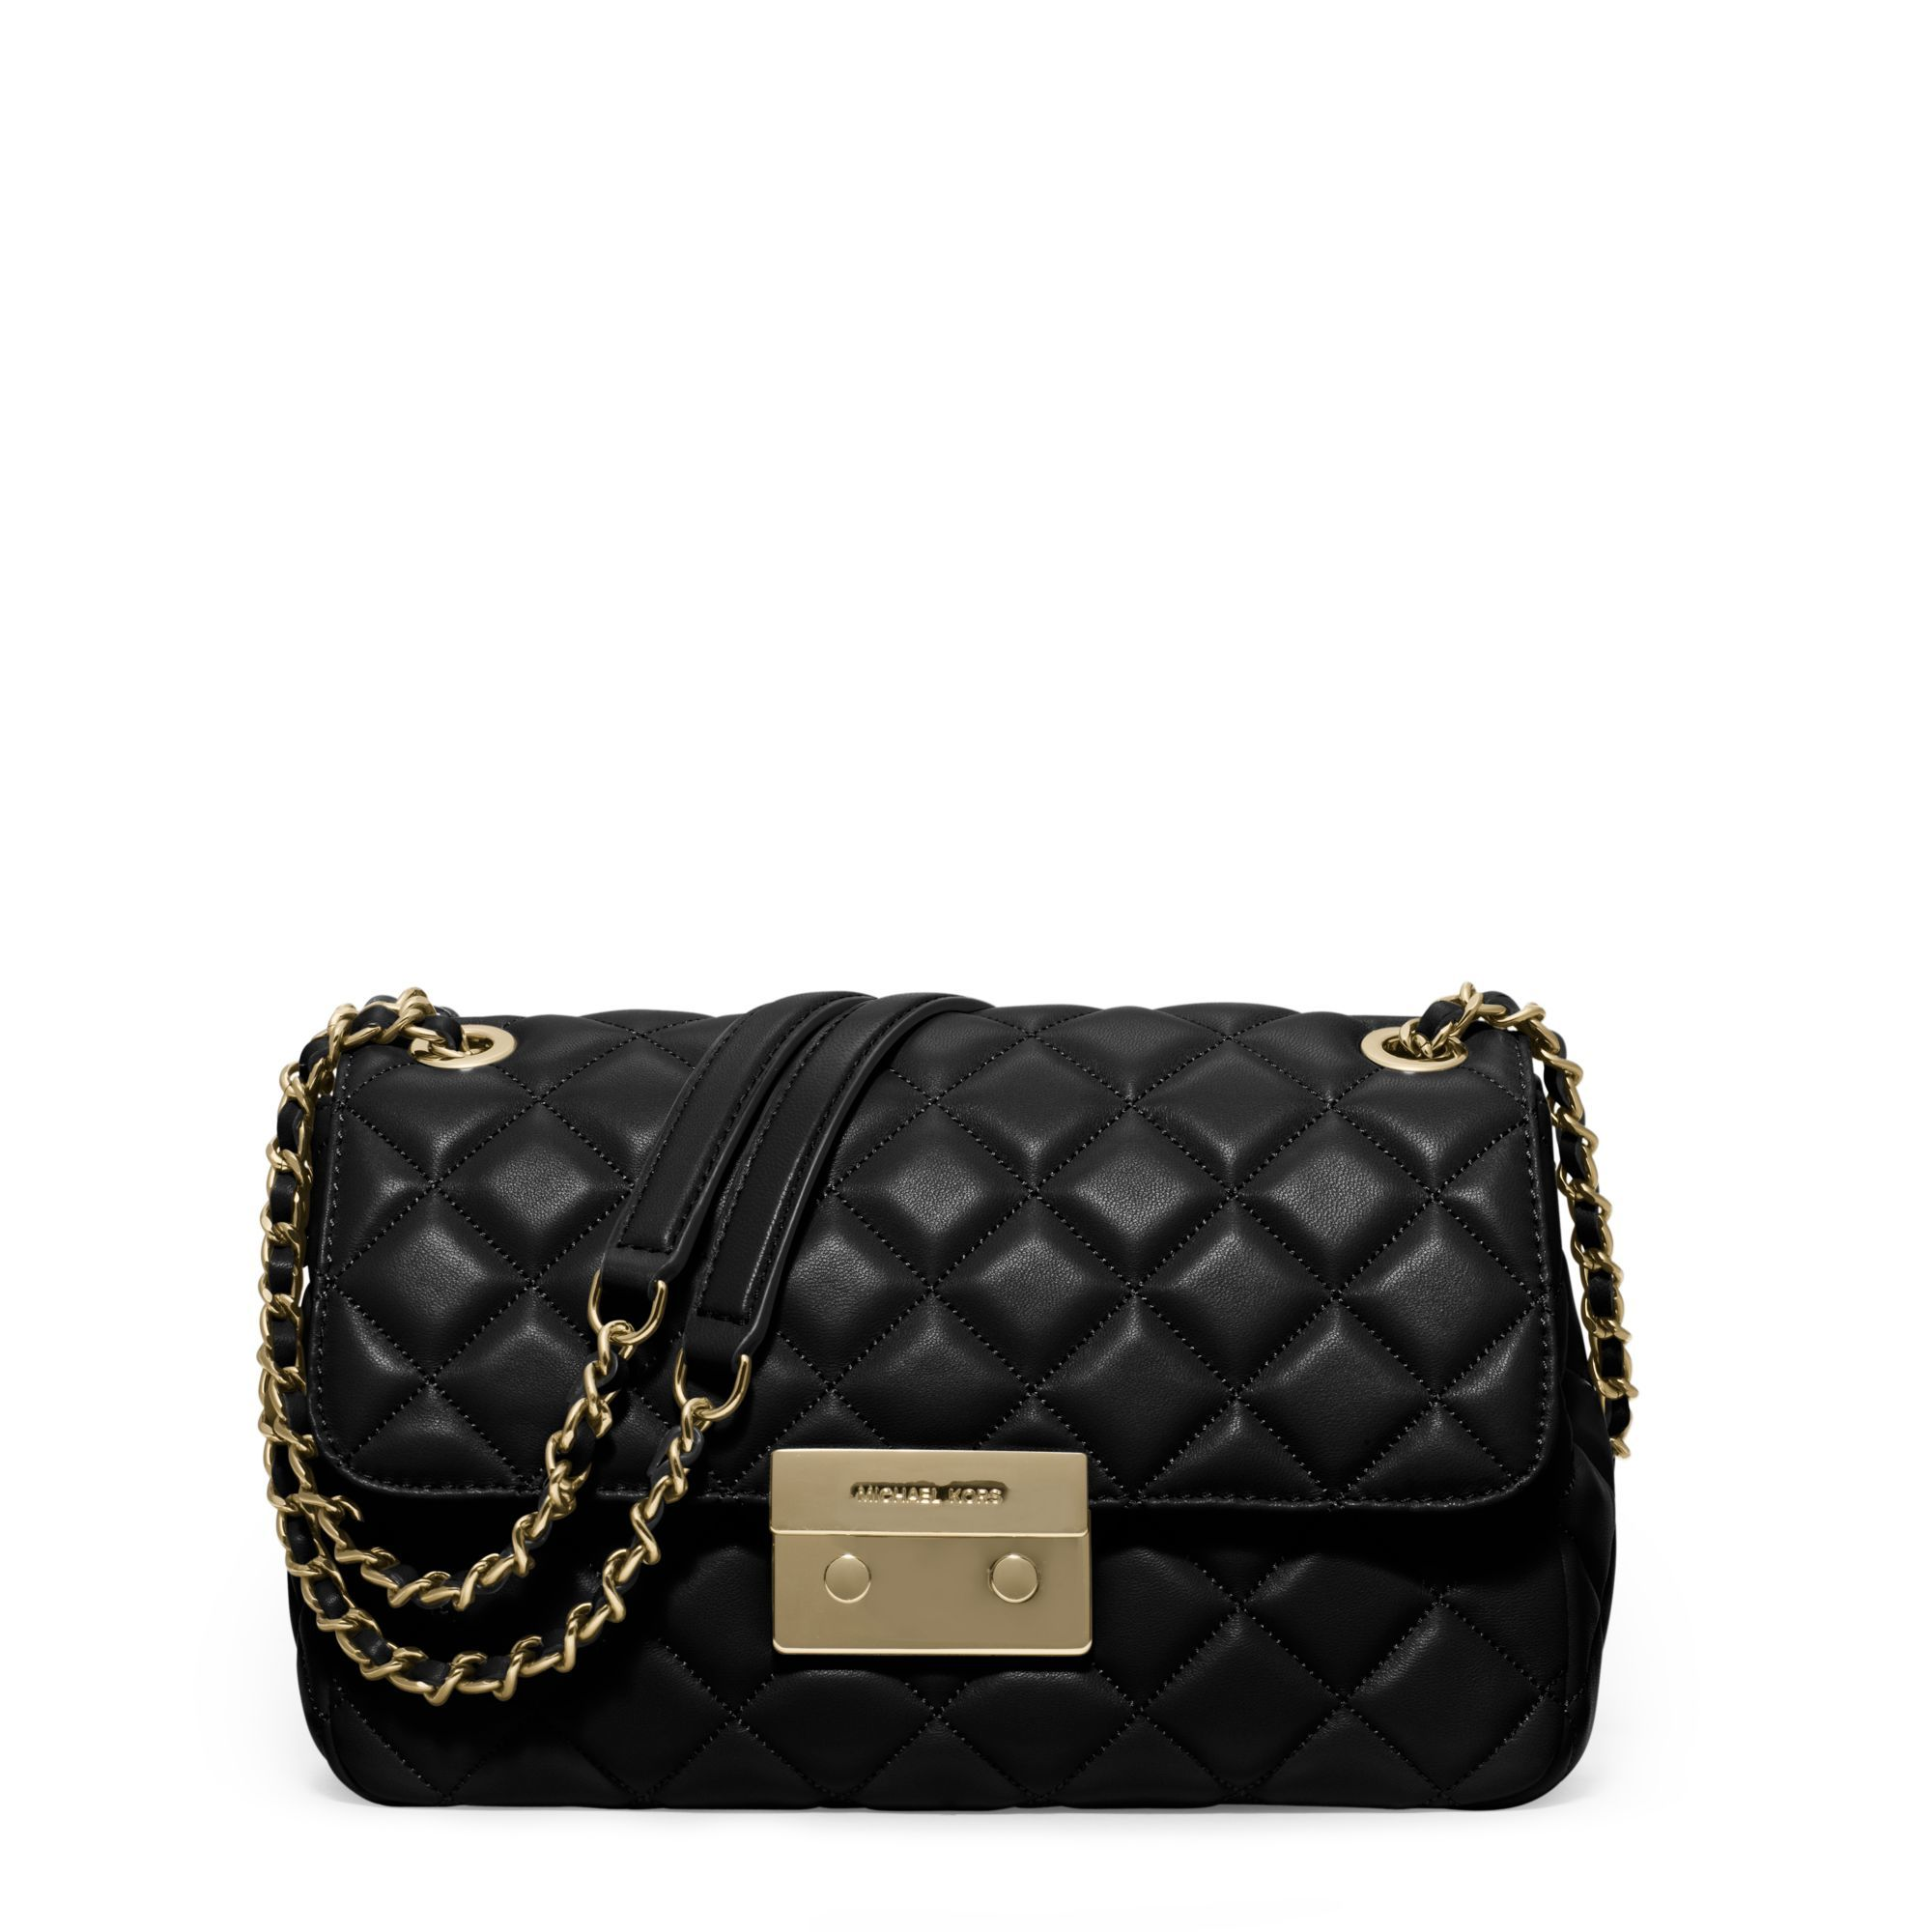 9226fab6f381 Women s Black Sloan Large Quilted-leather Shoulder Bag